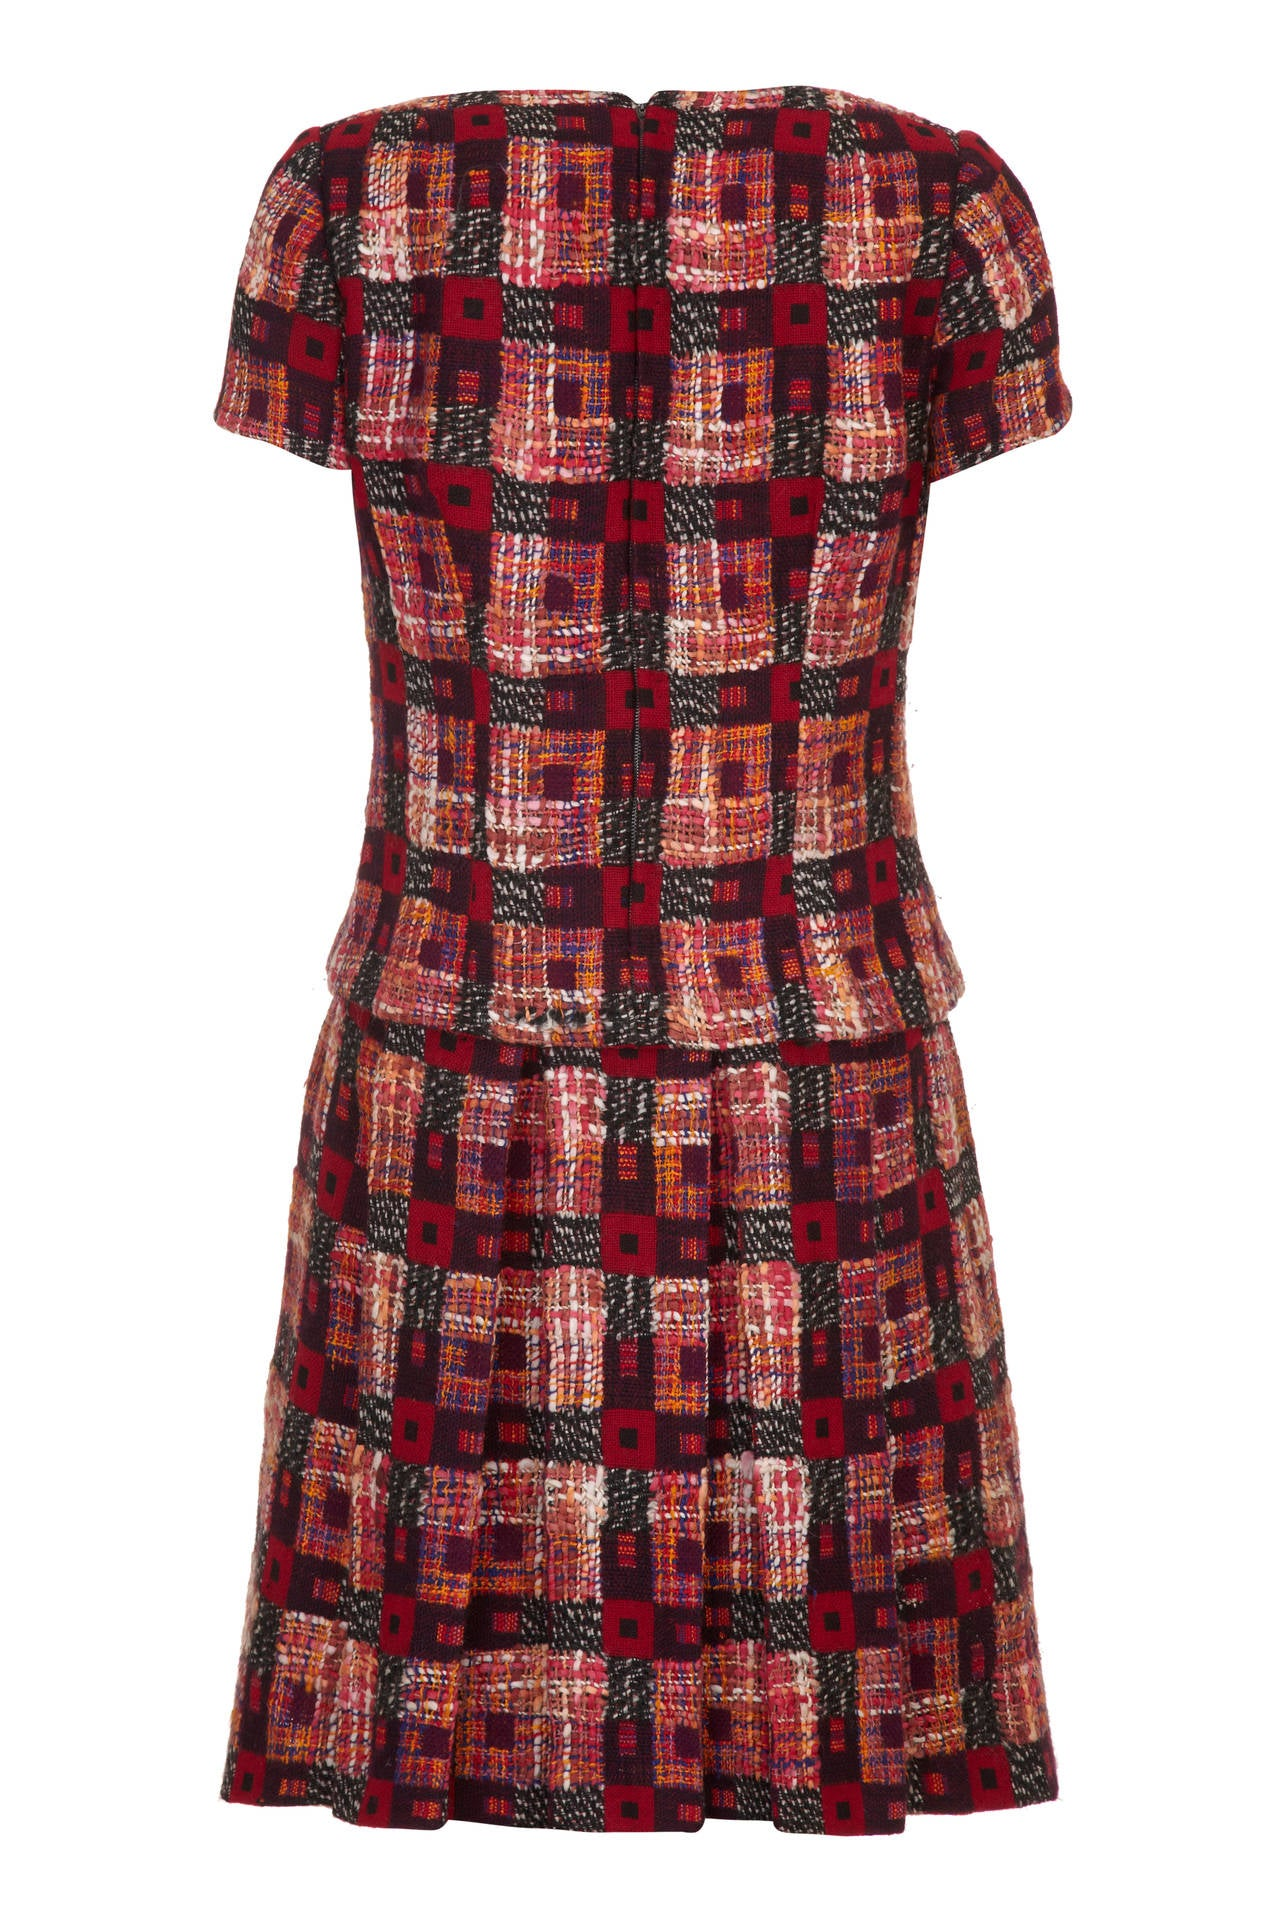 Lovely fantasy wool tweed winter dress from Harrods in tones of red, orange and brown.  This vintage dress has the appearance of a separate top and skirt but is in fact one piece with a box pleat skirt attached to the lining of the bodice. It